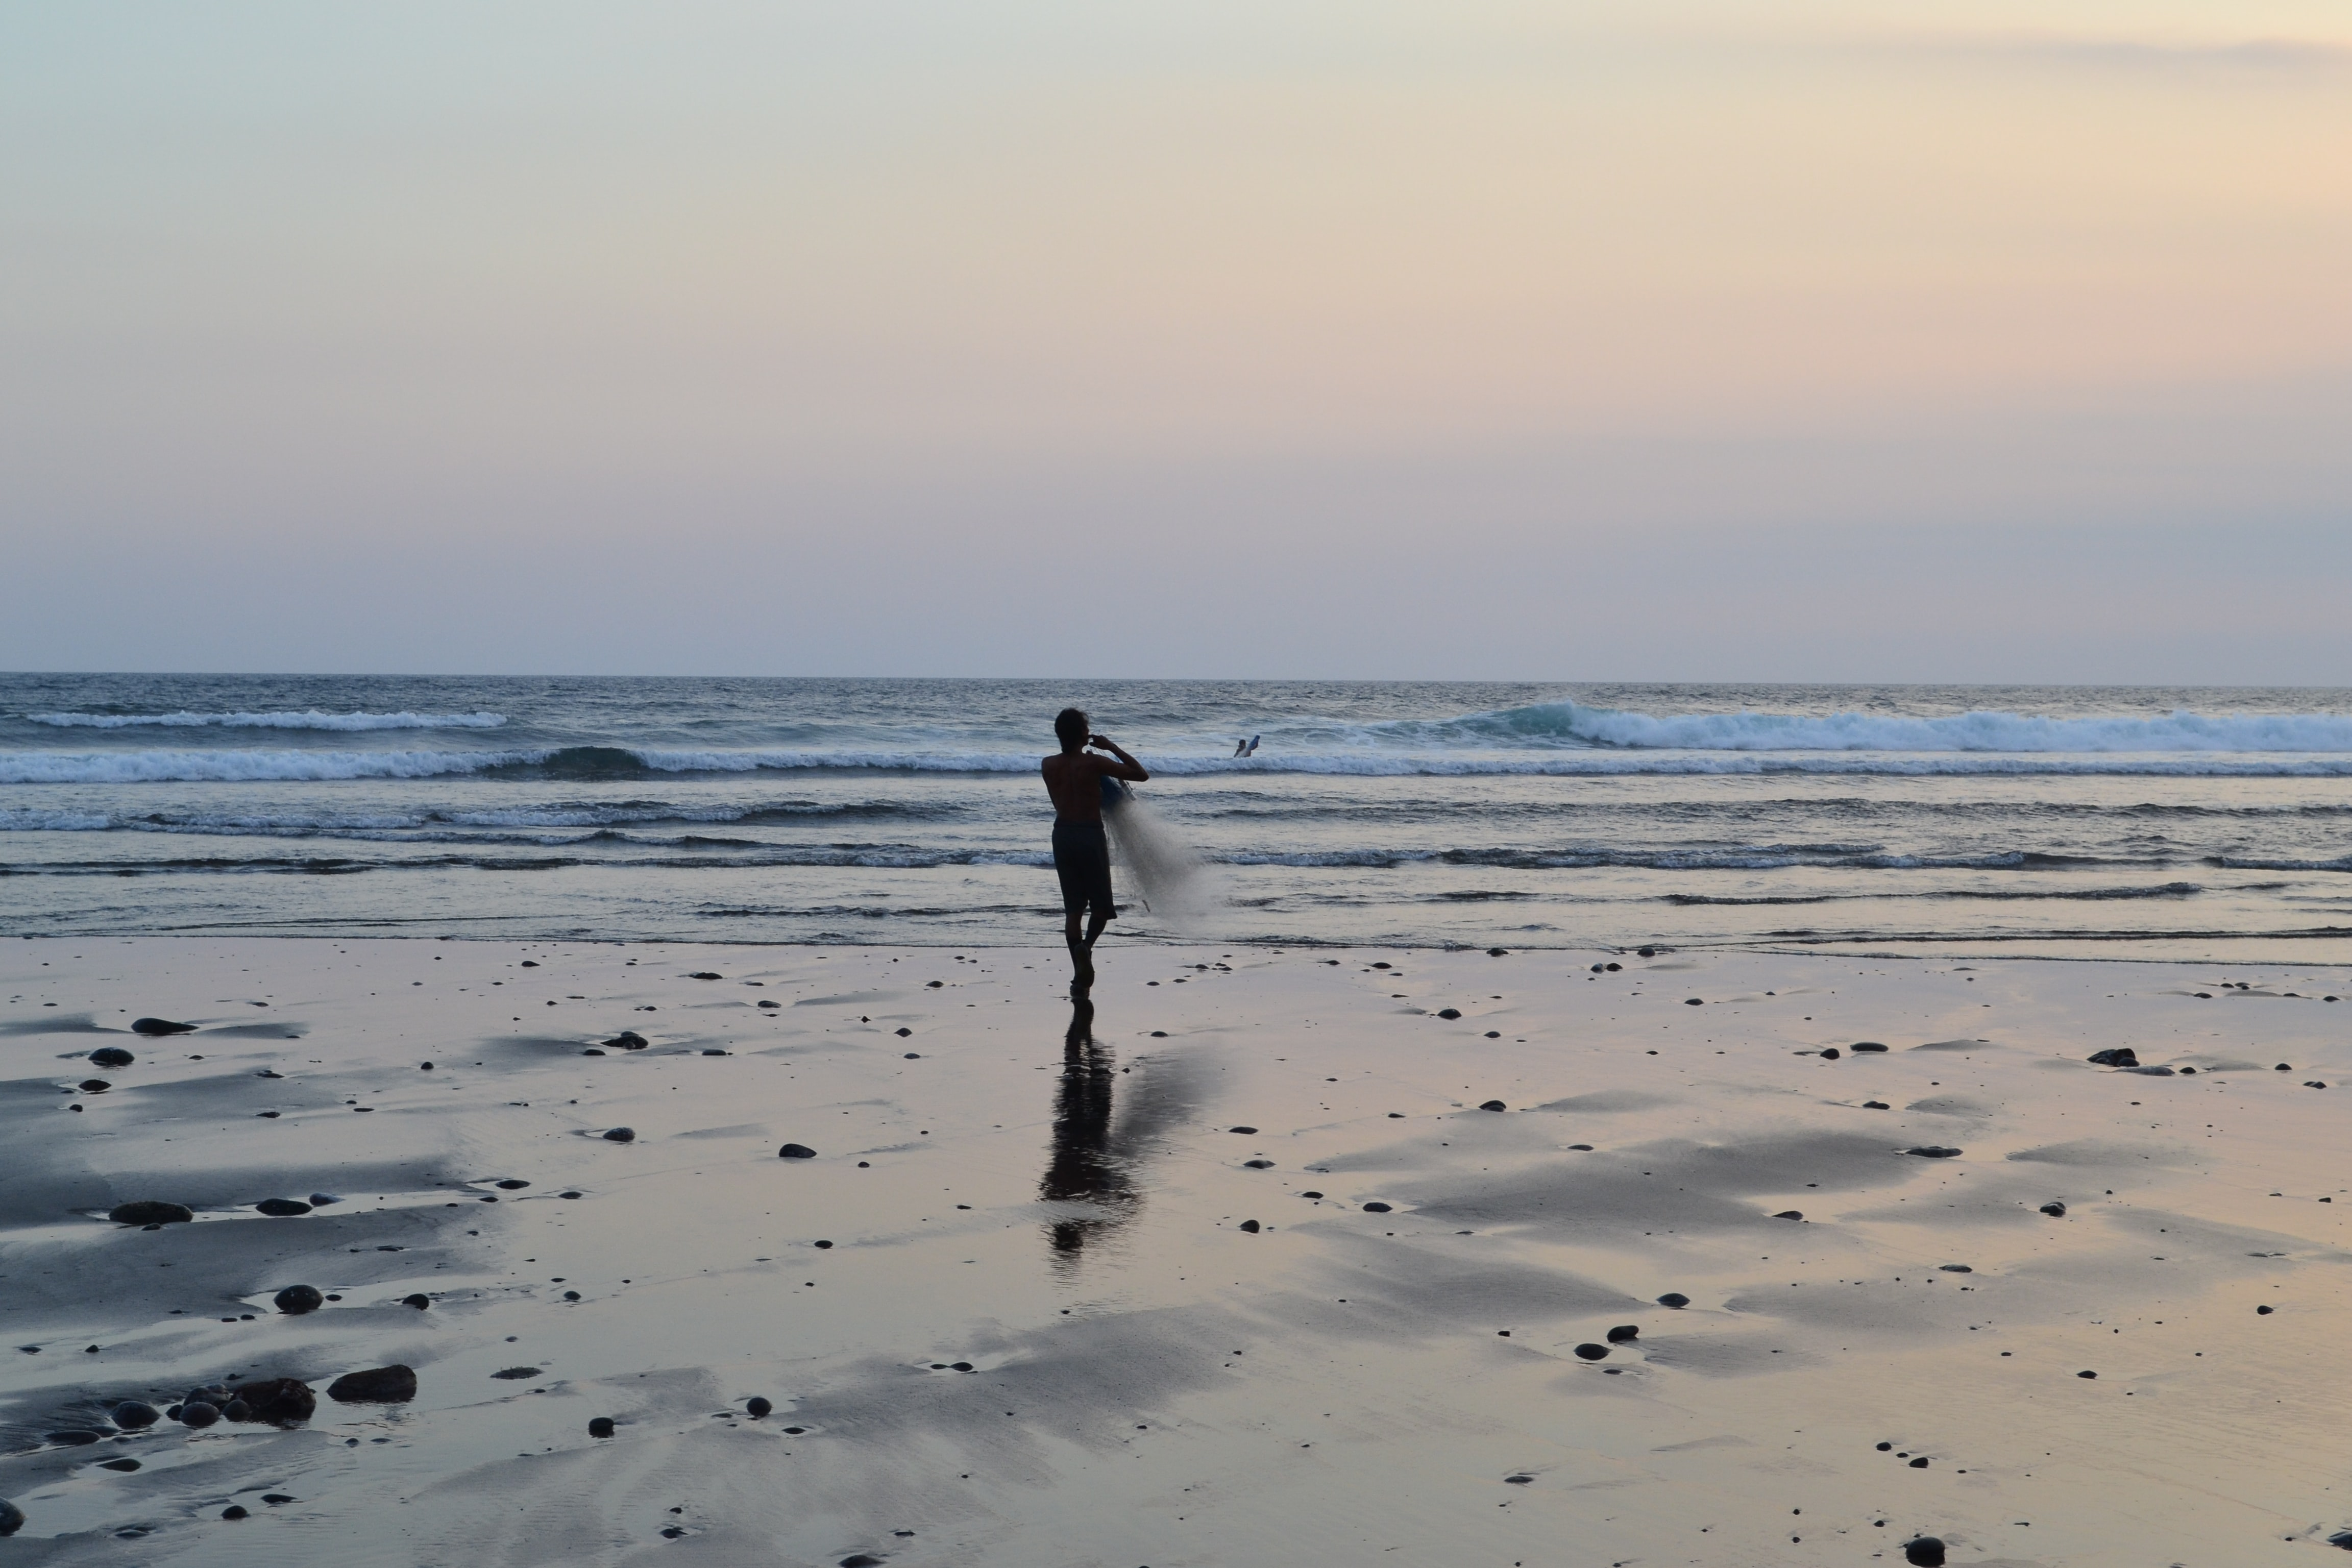 silhouette of person holding net near body of water